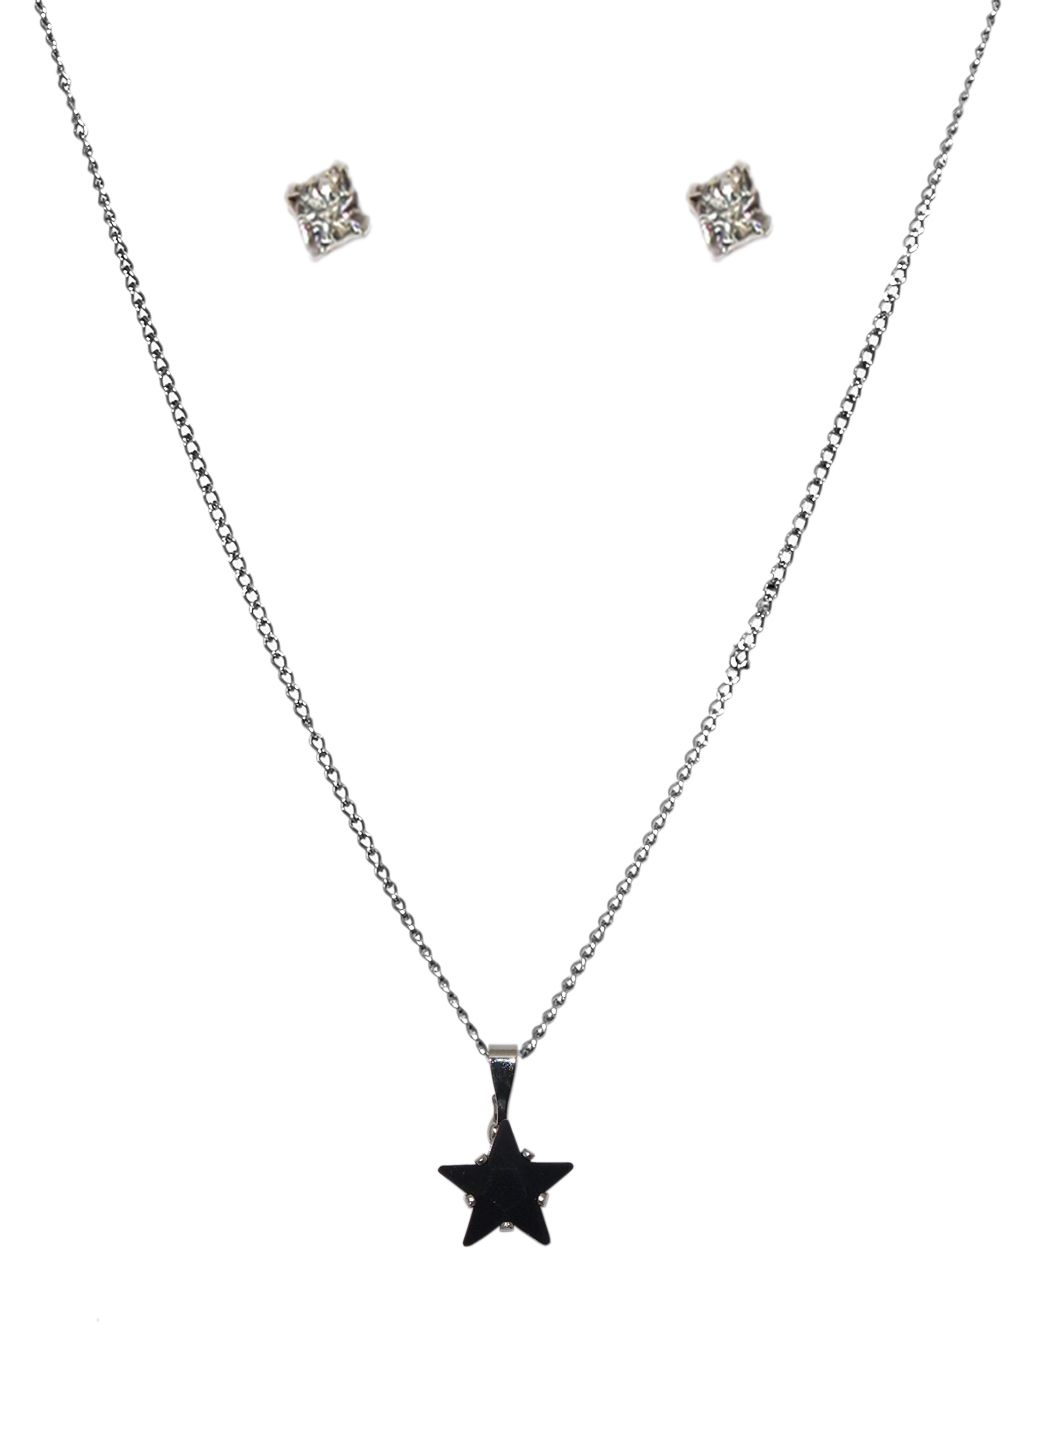 store pendant choose five badge for star length pointed silver shape product new gold